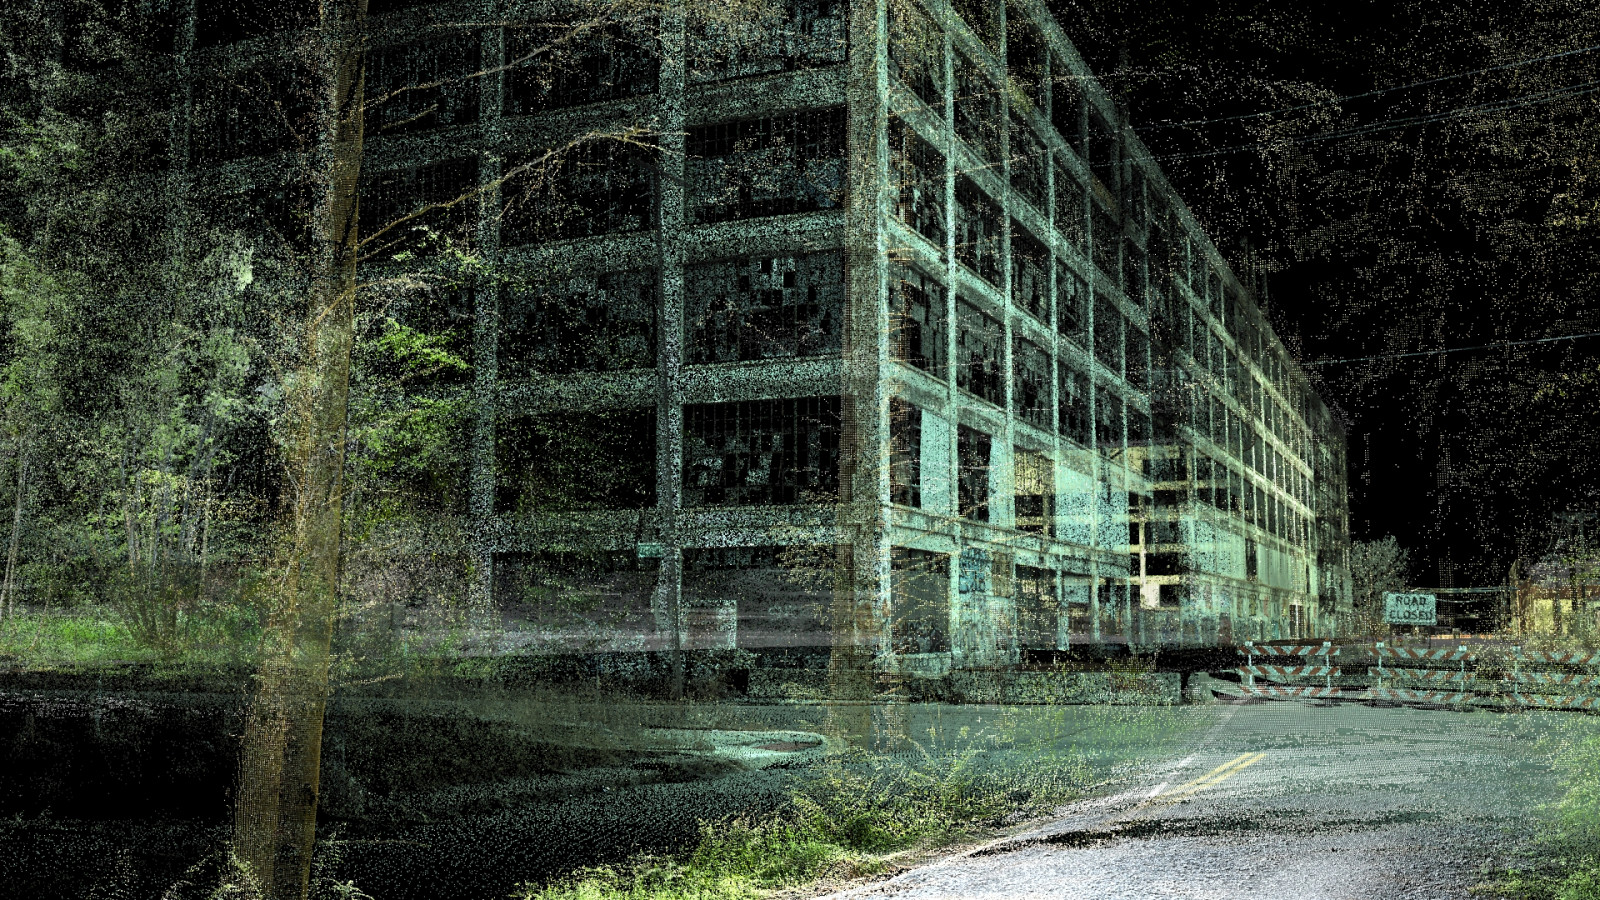 A graphically designed image of a large building next to a road. The image is black and green and looks like night time.